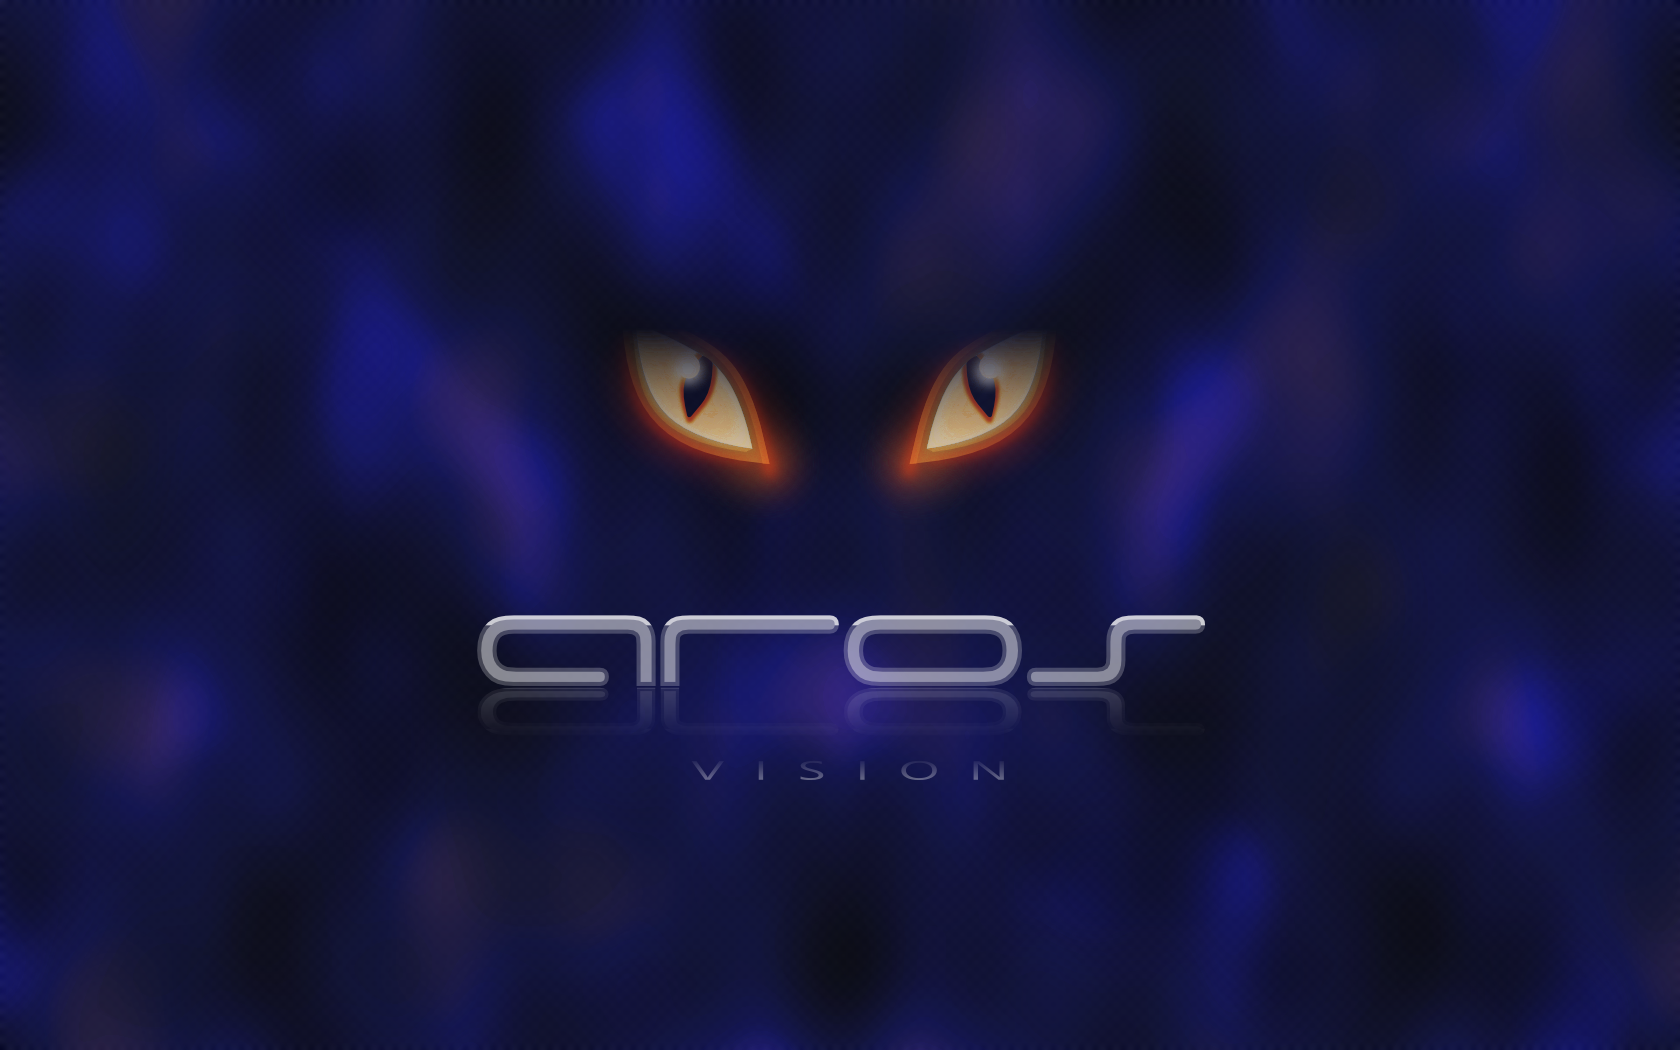 ArosVision_Backdrop_Blue